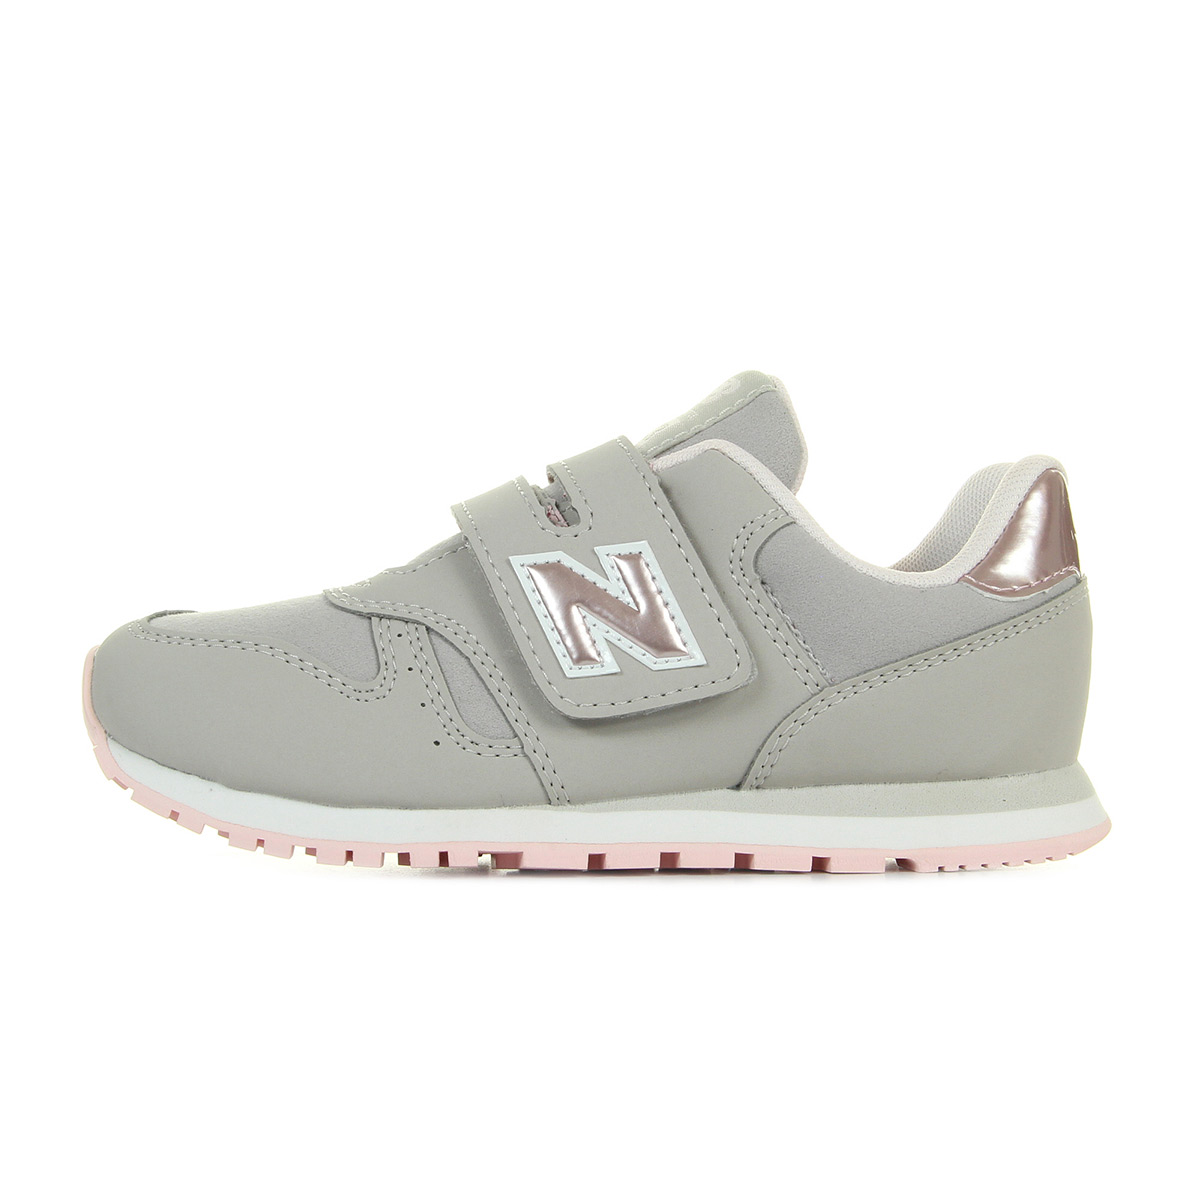 New Balance Junior Bimba Grigio KV 373 F1Y - LOMBARDI CALZATURE ... 16178119be5